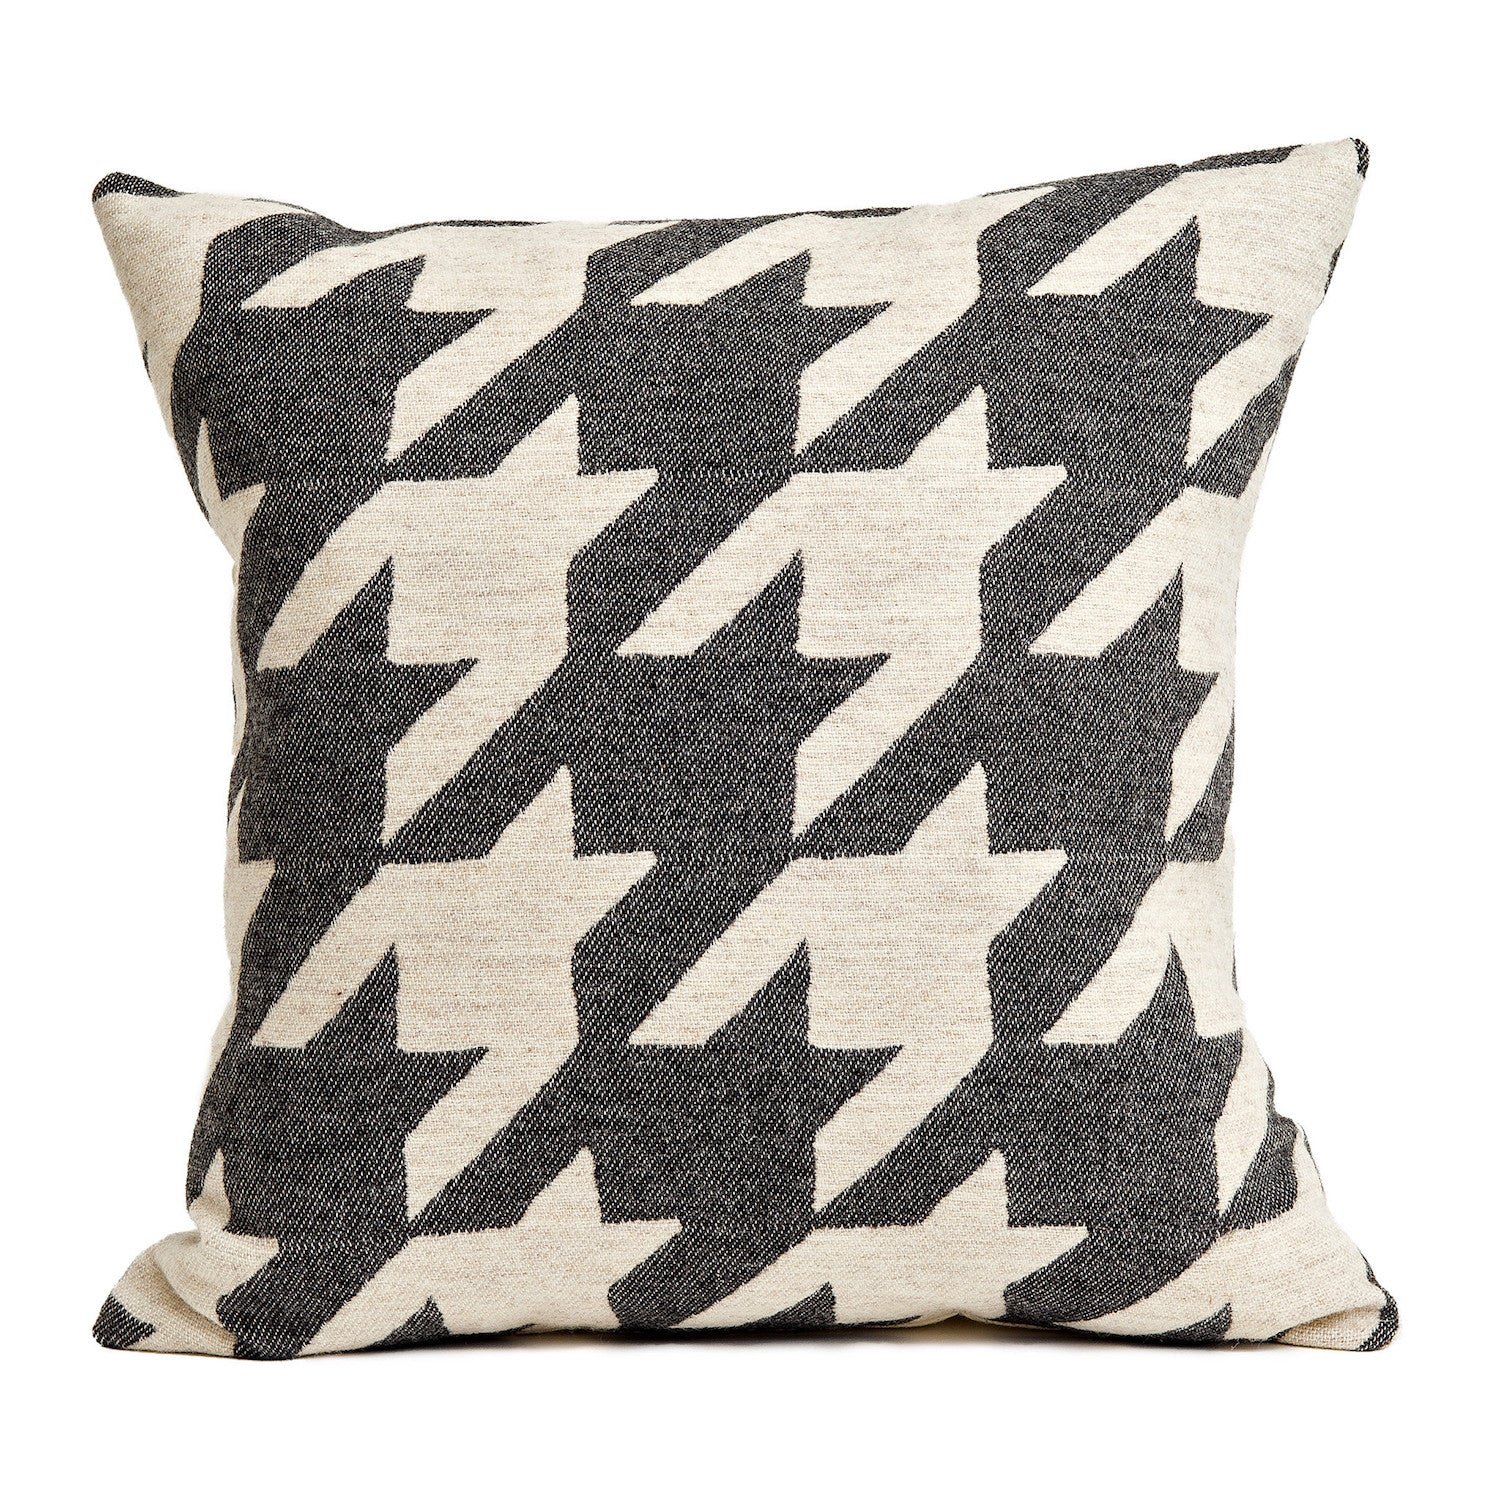 Tori Murphy Dog Tooth Cushion